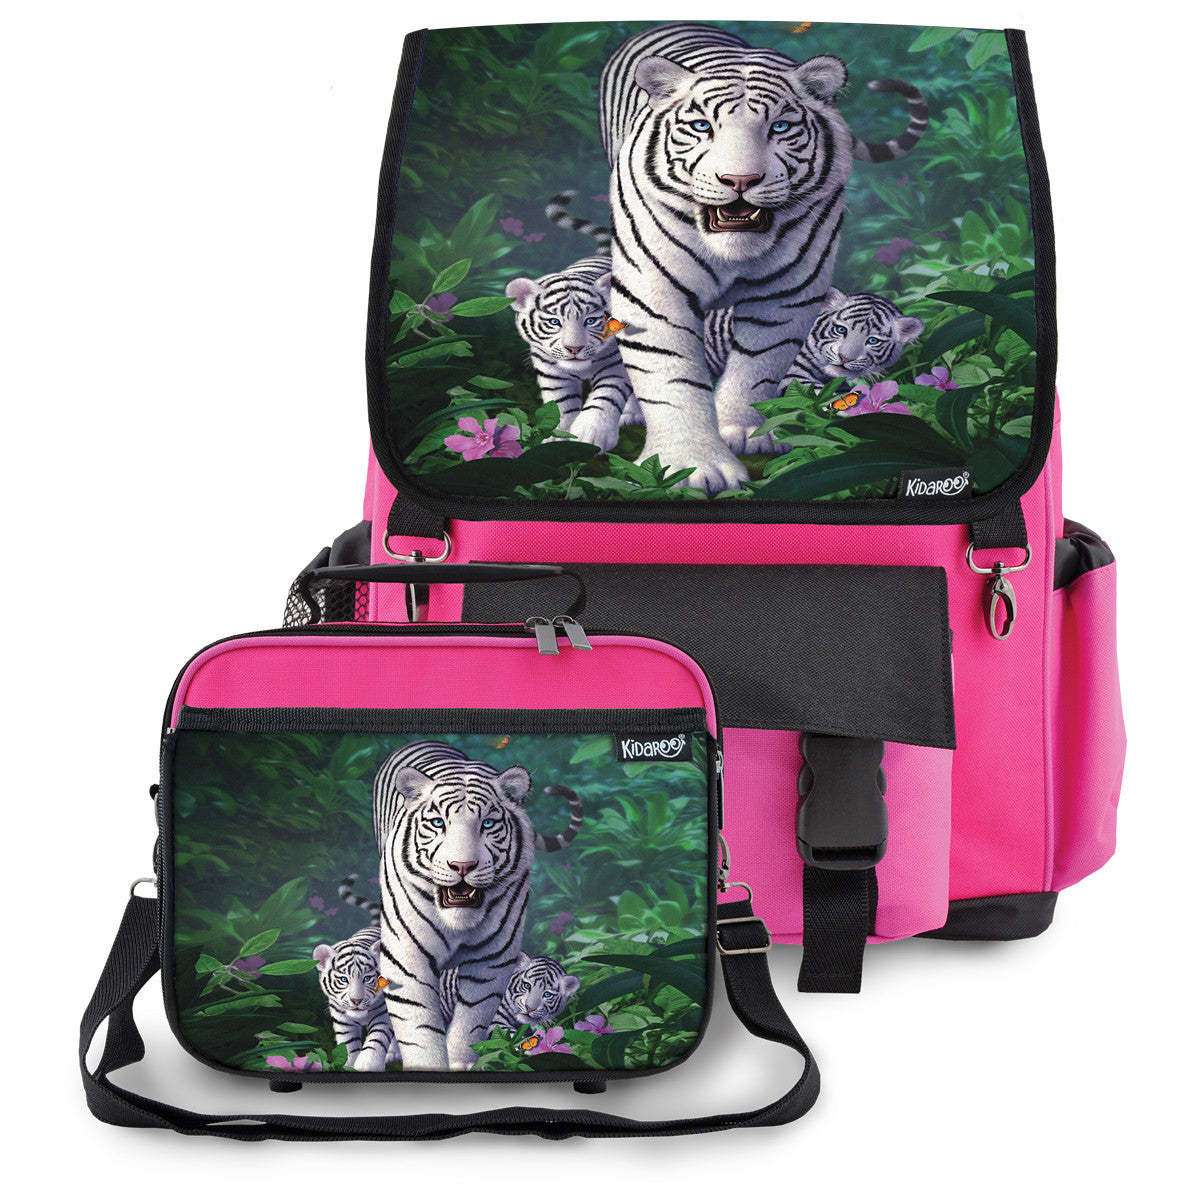 Kidaroo Pink White Tiger & Cubs School Backpack & Lunchbox Set for Boys, Girls, Kids